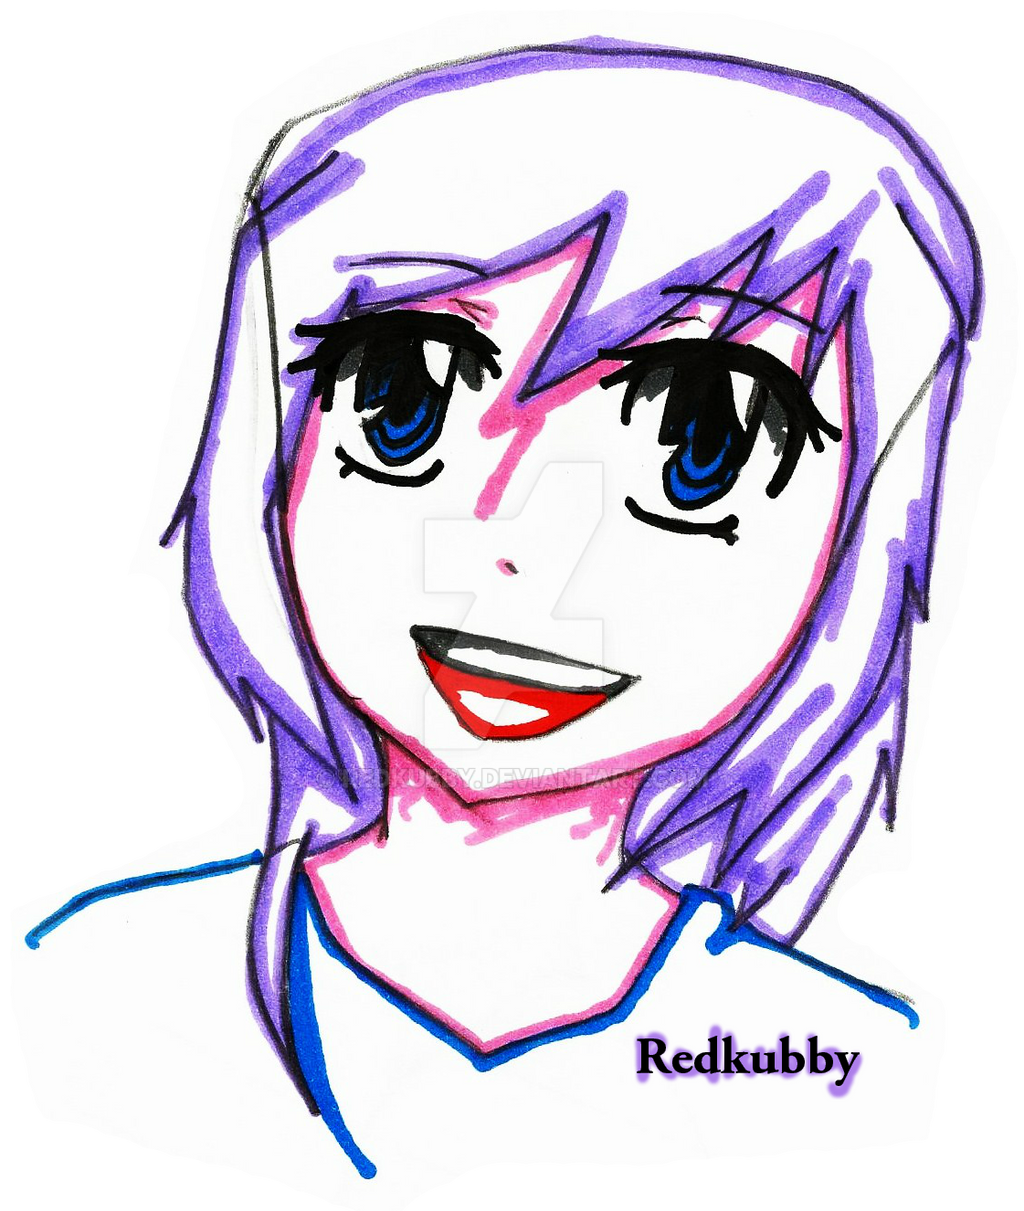 Purple haired anime girl by redkubby on DeviantArt